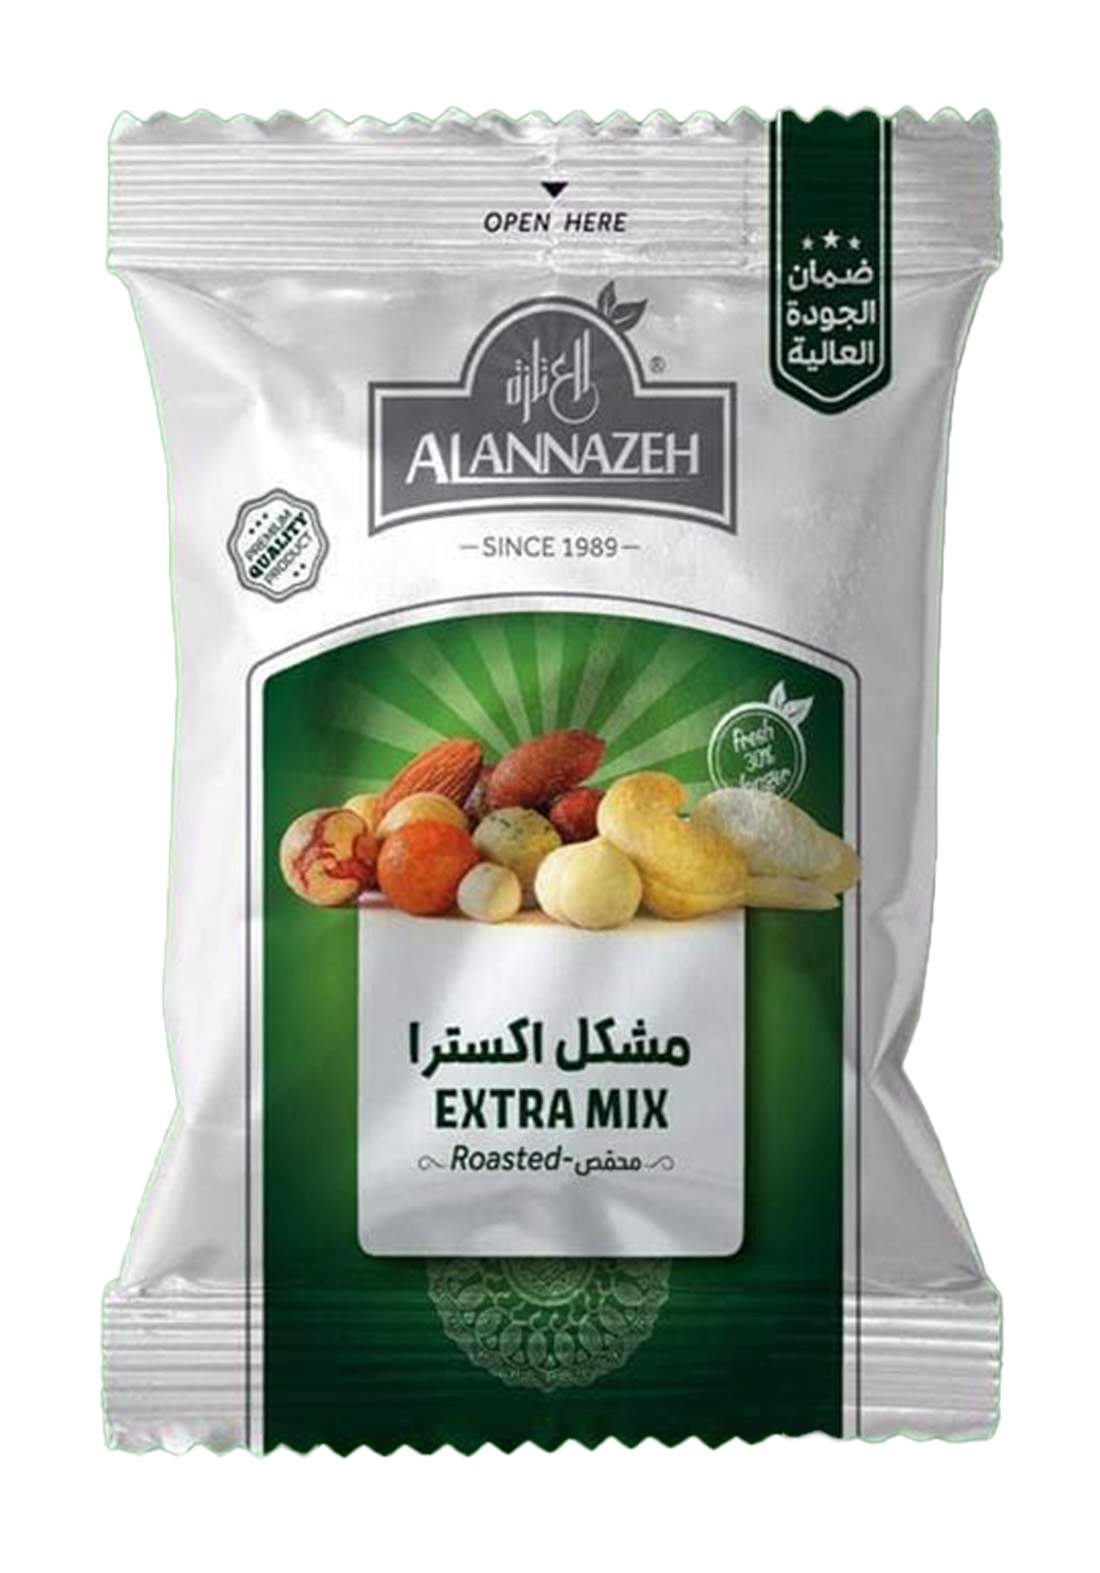 Al-Annazeh Extra Mix Nuts 90g مكسرات اكسترا